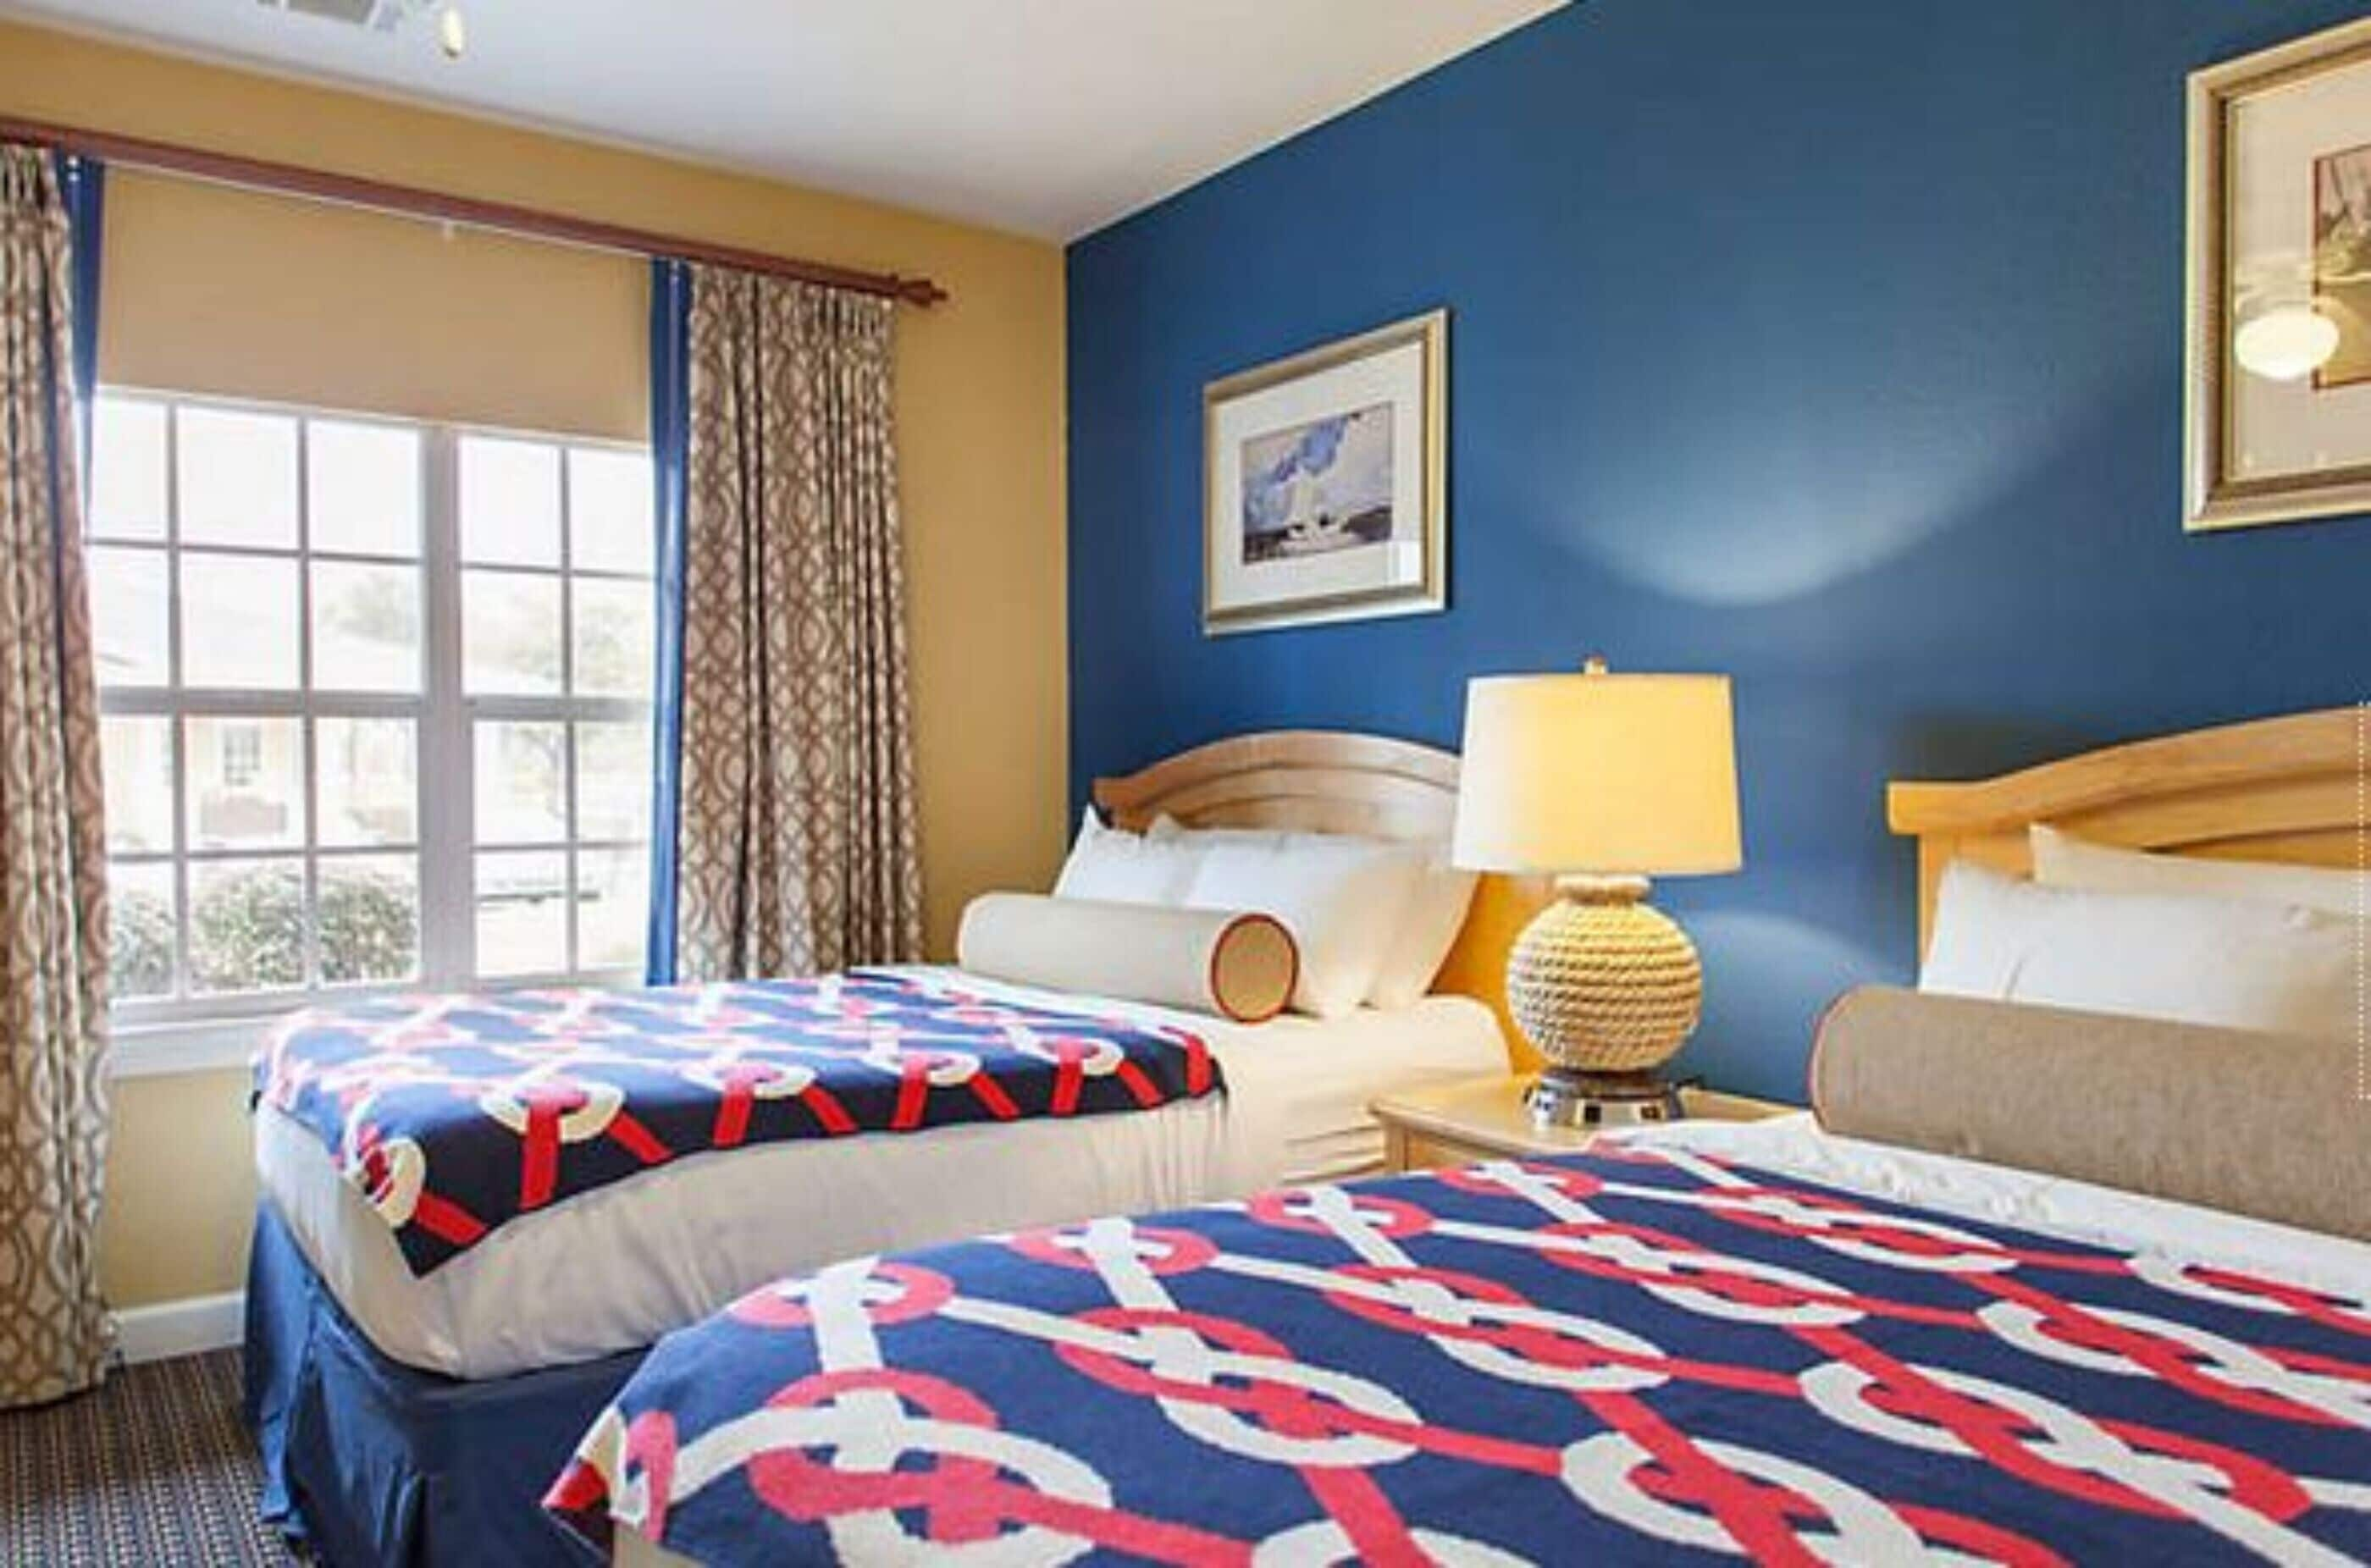 Picture of: 2 Bedroom 1 King 2 Queen Beds 2 Bath Resort Condo With Lots Of Amenities 2020 Room Prices Deals Reviews Expedia